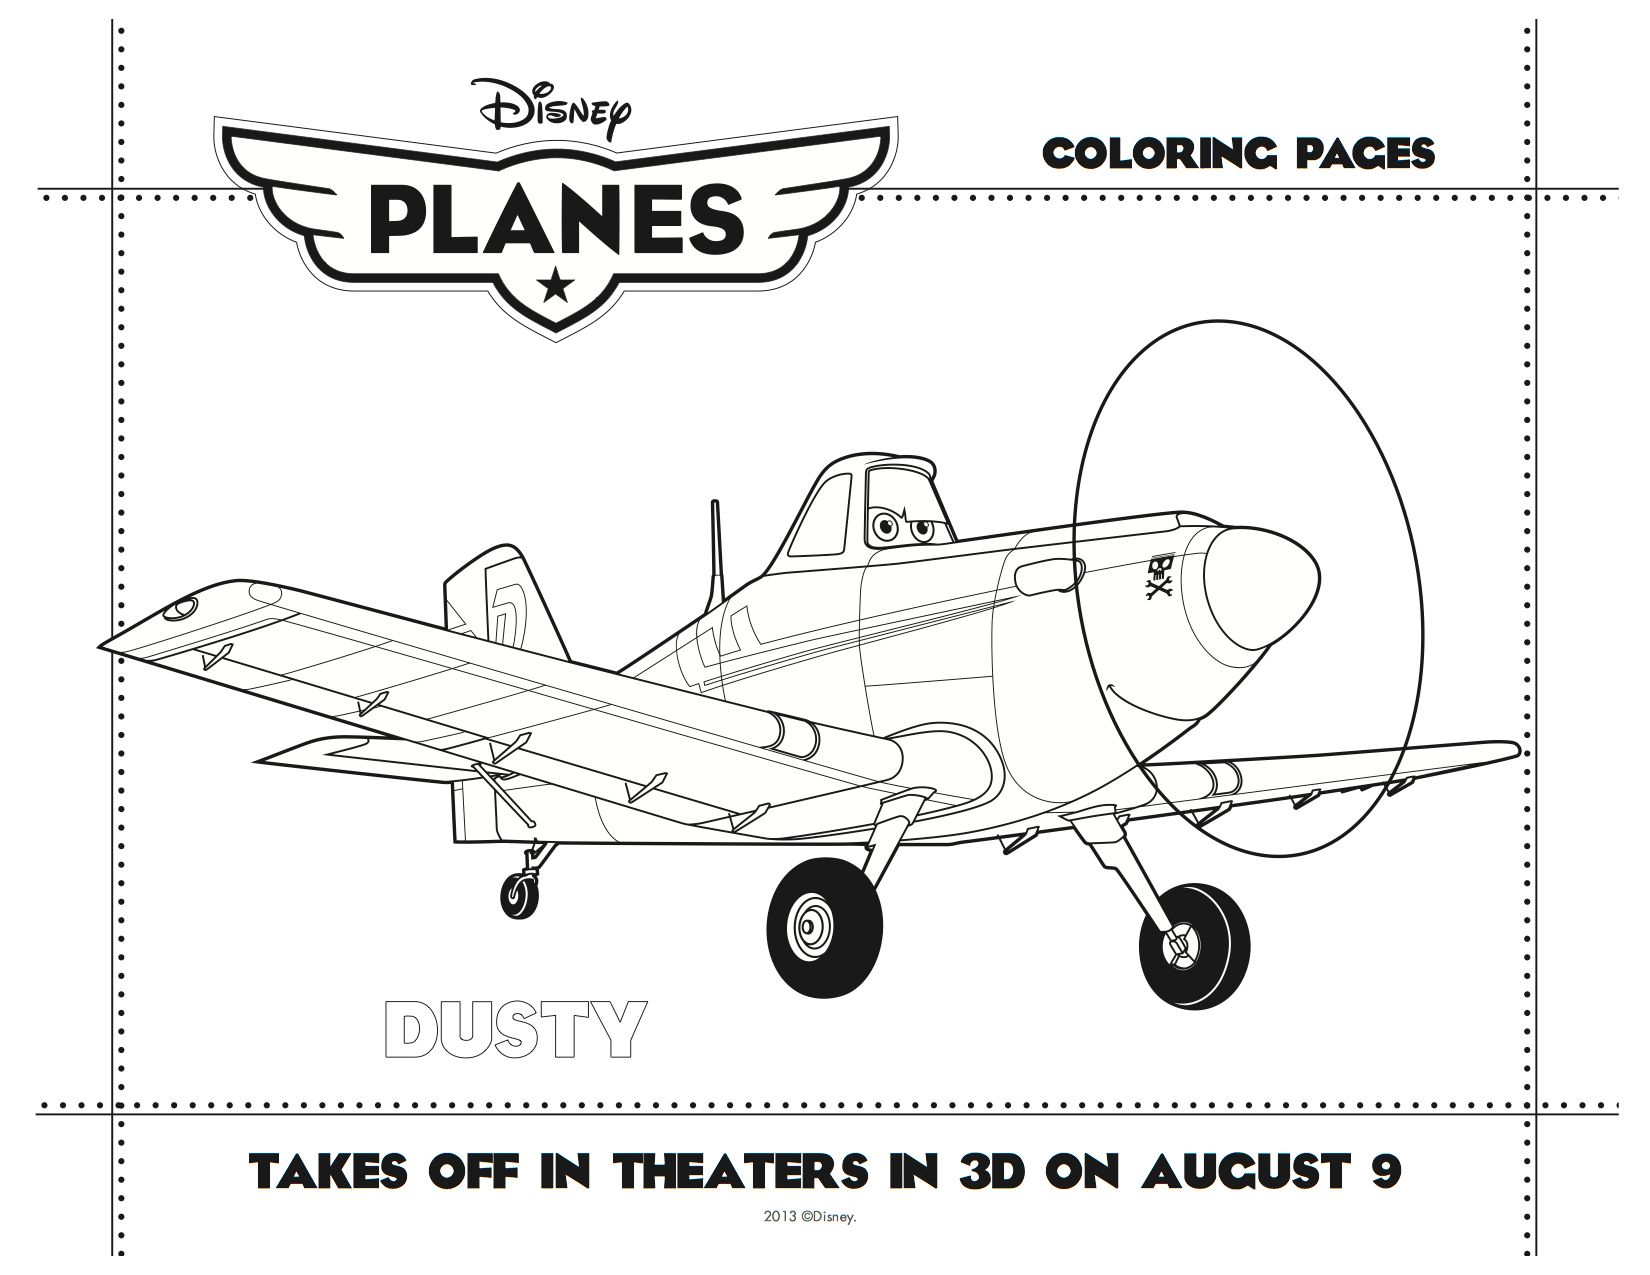 Free printable coloring pages airplanes - Disney Planes Printable Dusty Coloring Sheet